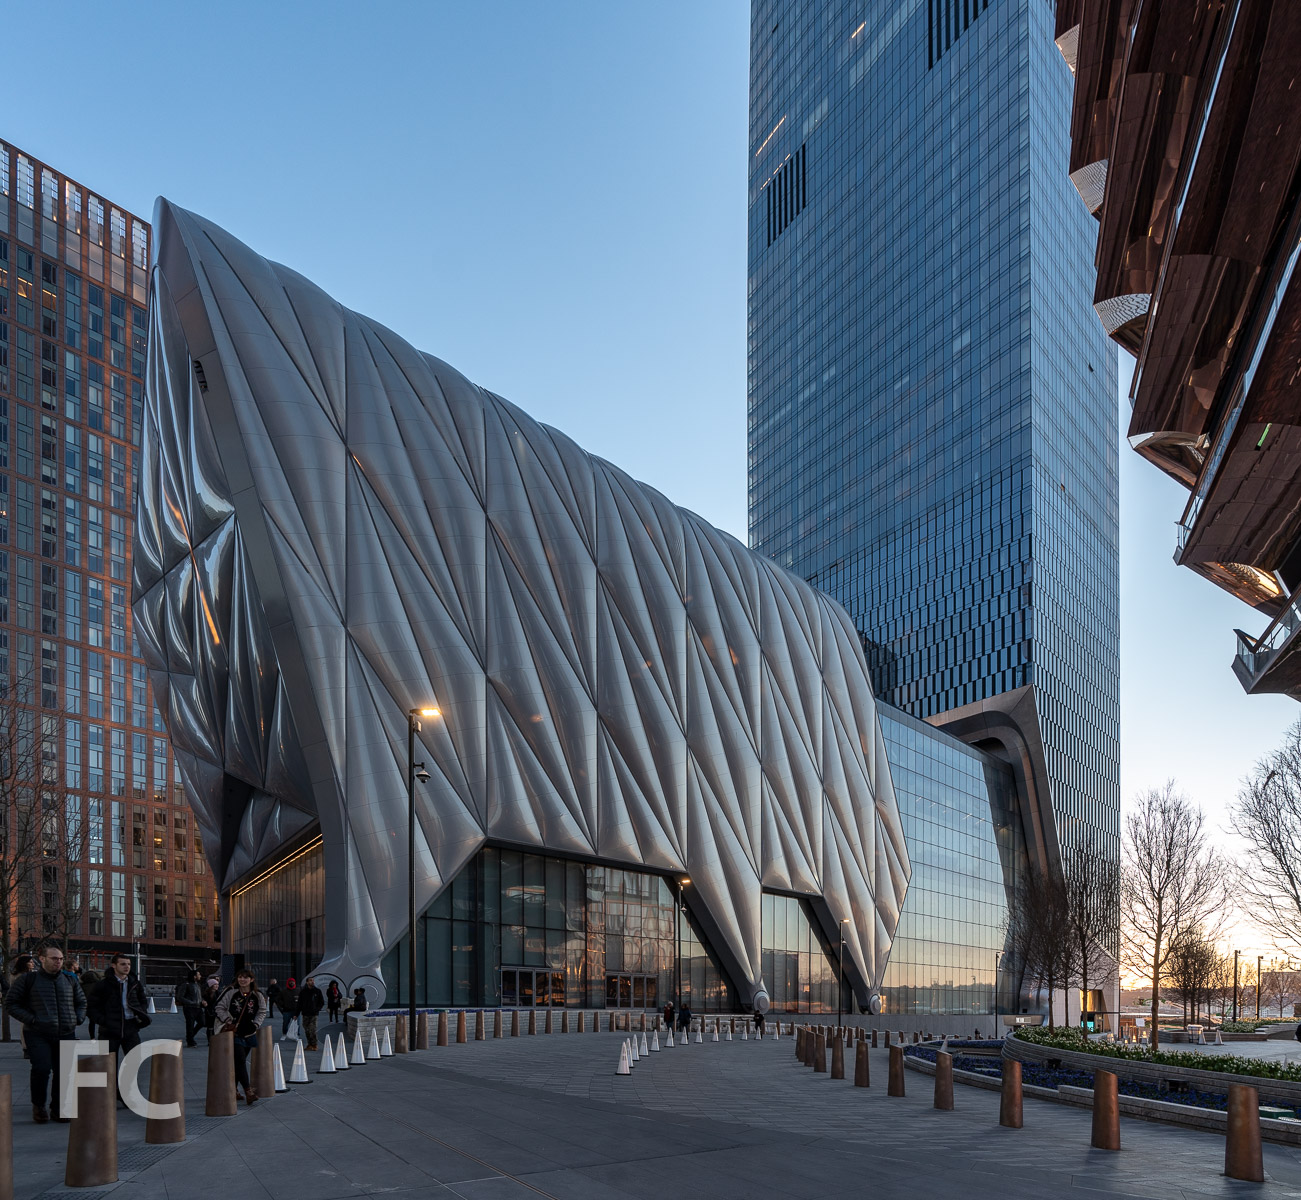 2019_04_01-The Shed at Hudson Yards-DSC09768.jpg